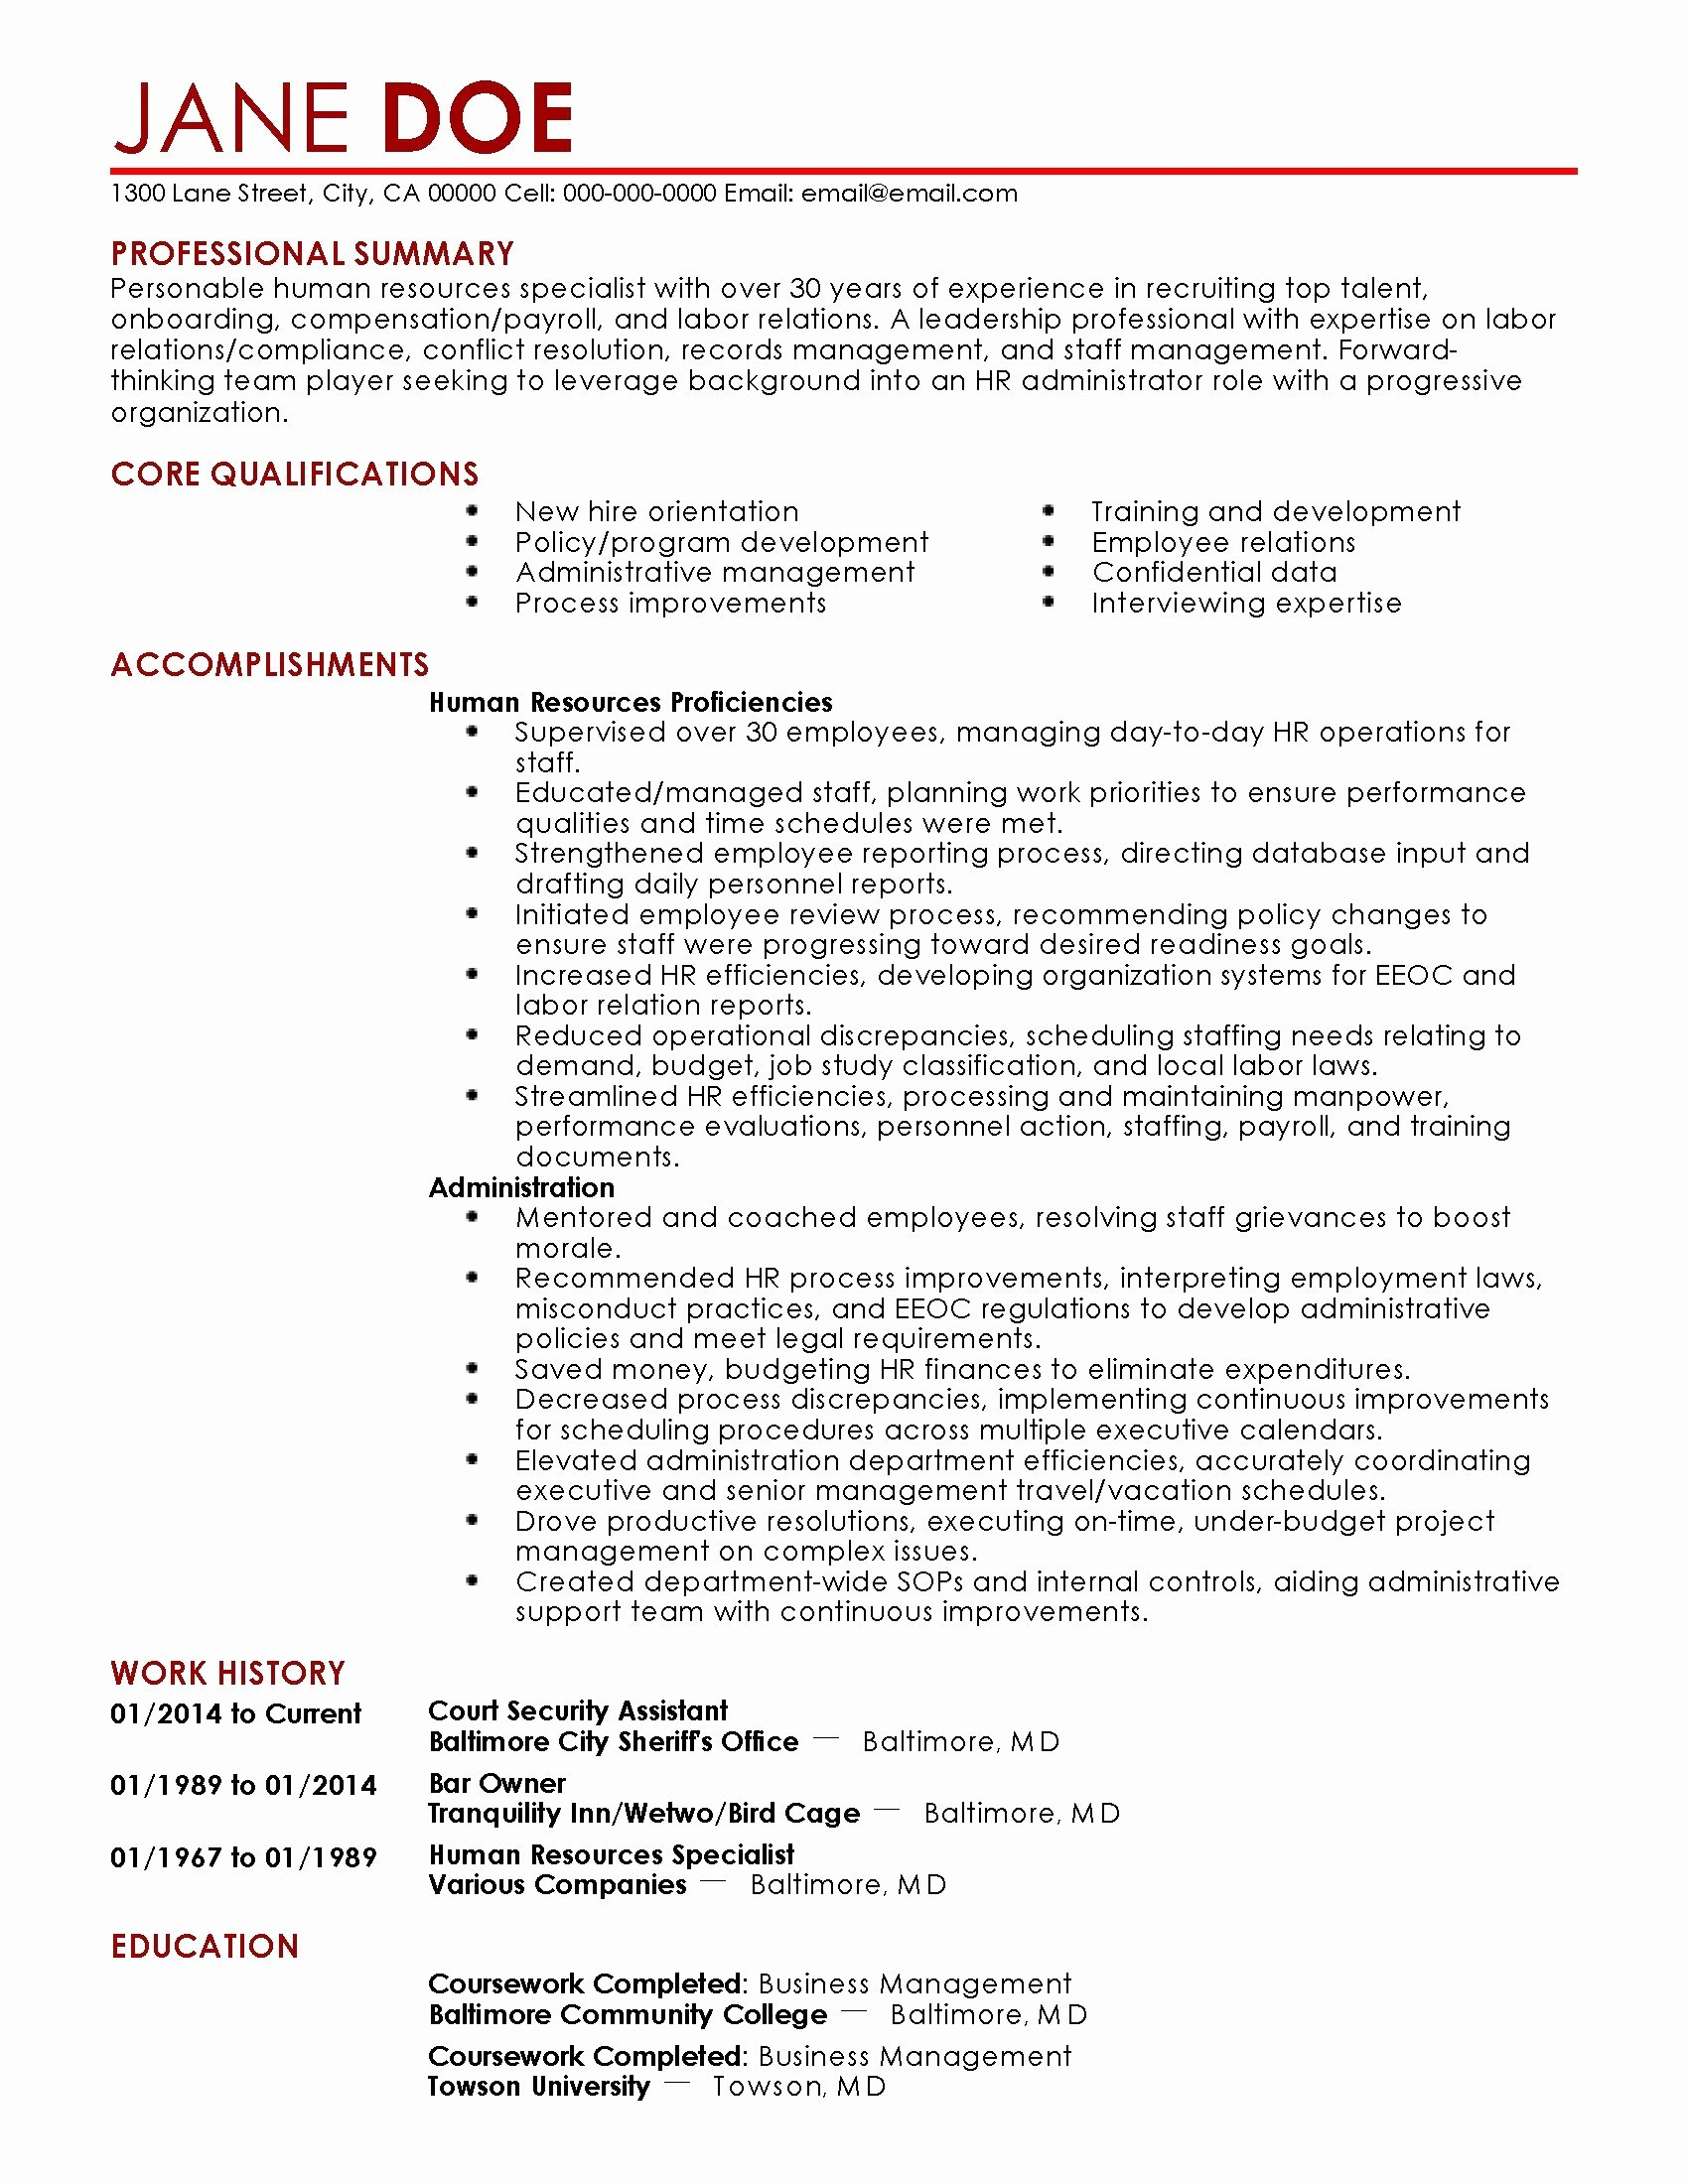 medical assistant resume template example-Medical assistant resume template lovely medical assistant resumes new medical resumes 0d bizmancan 16-d